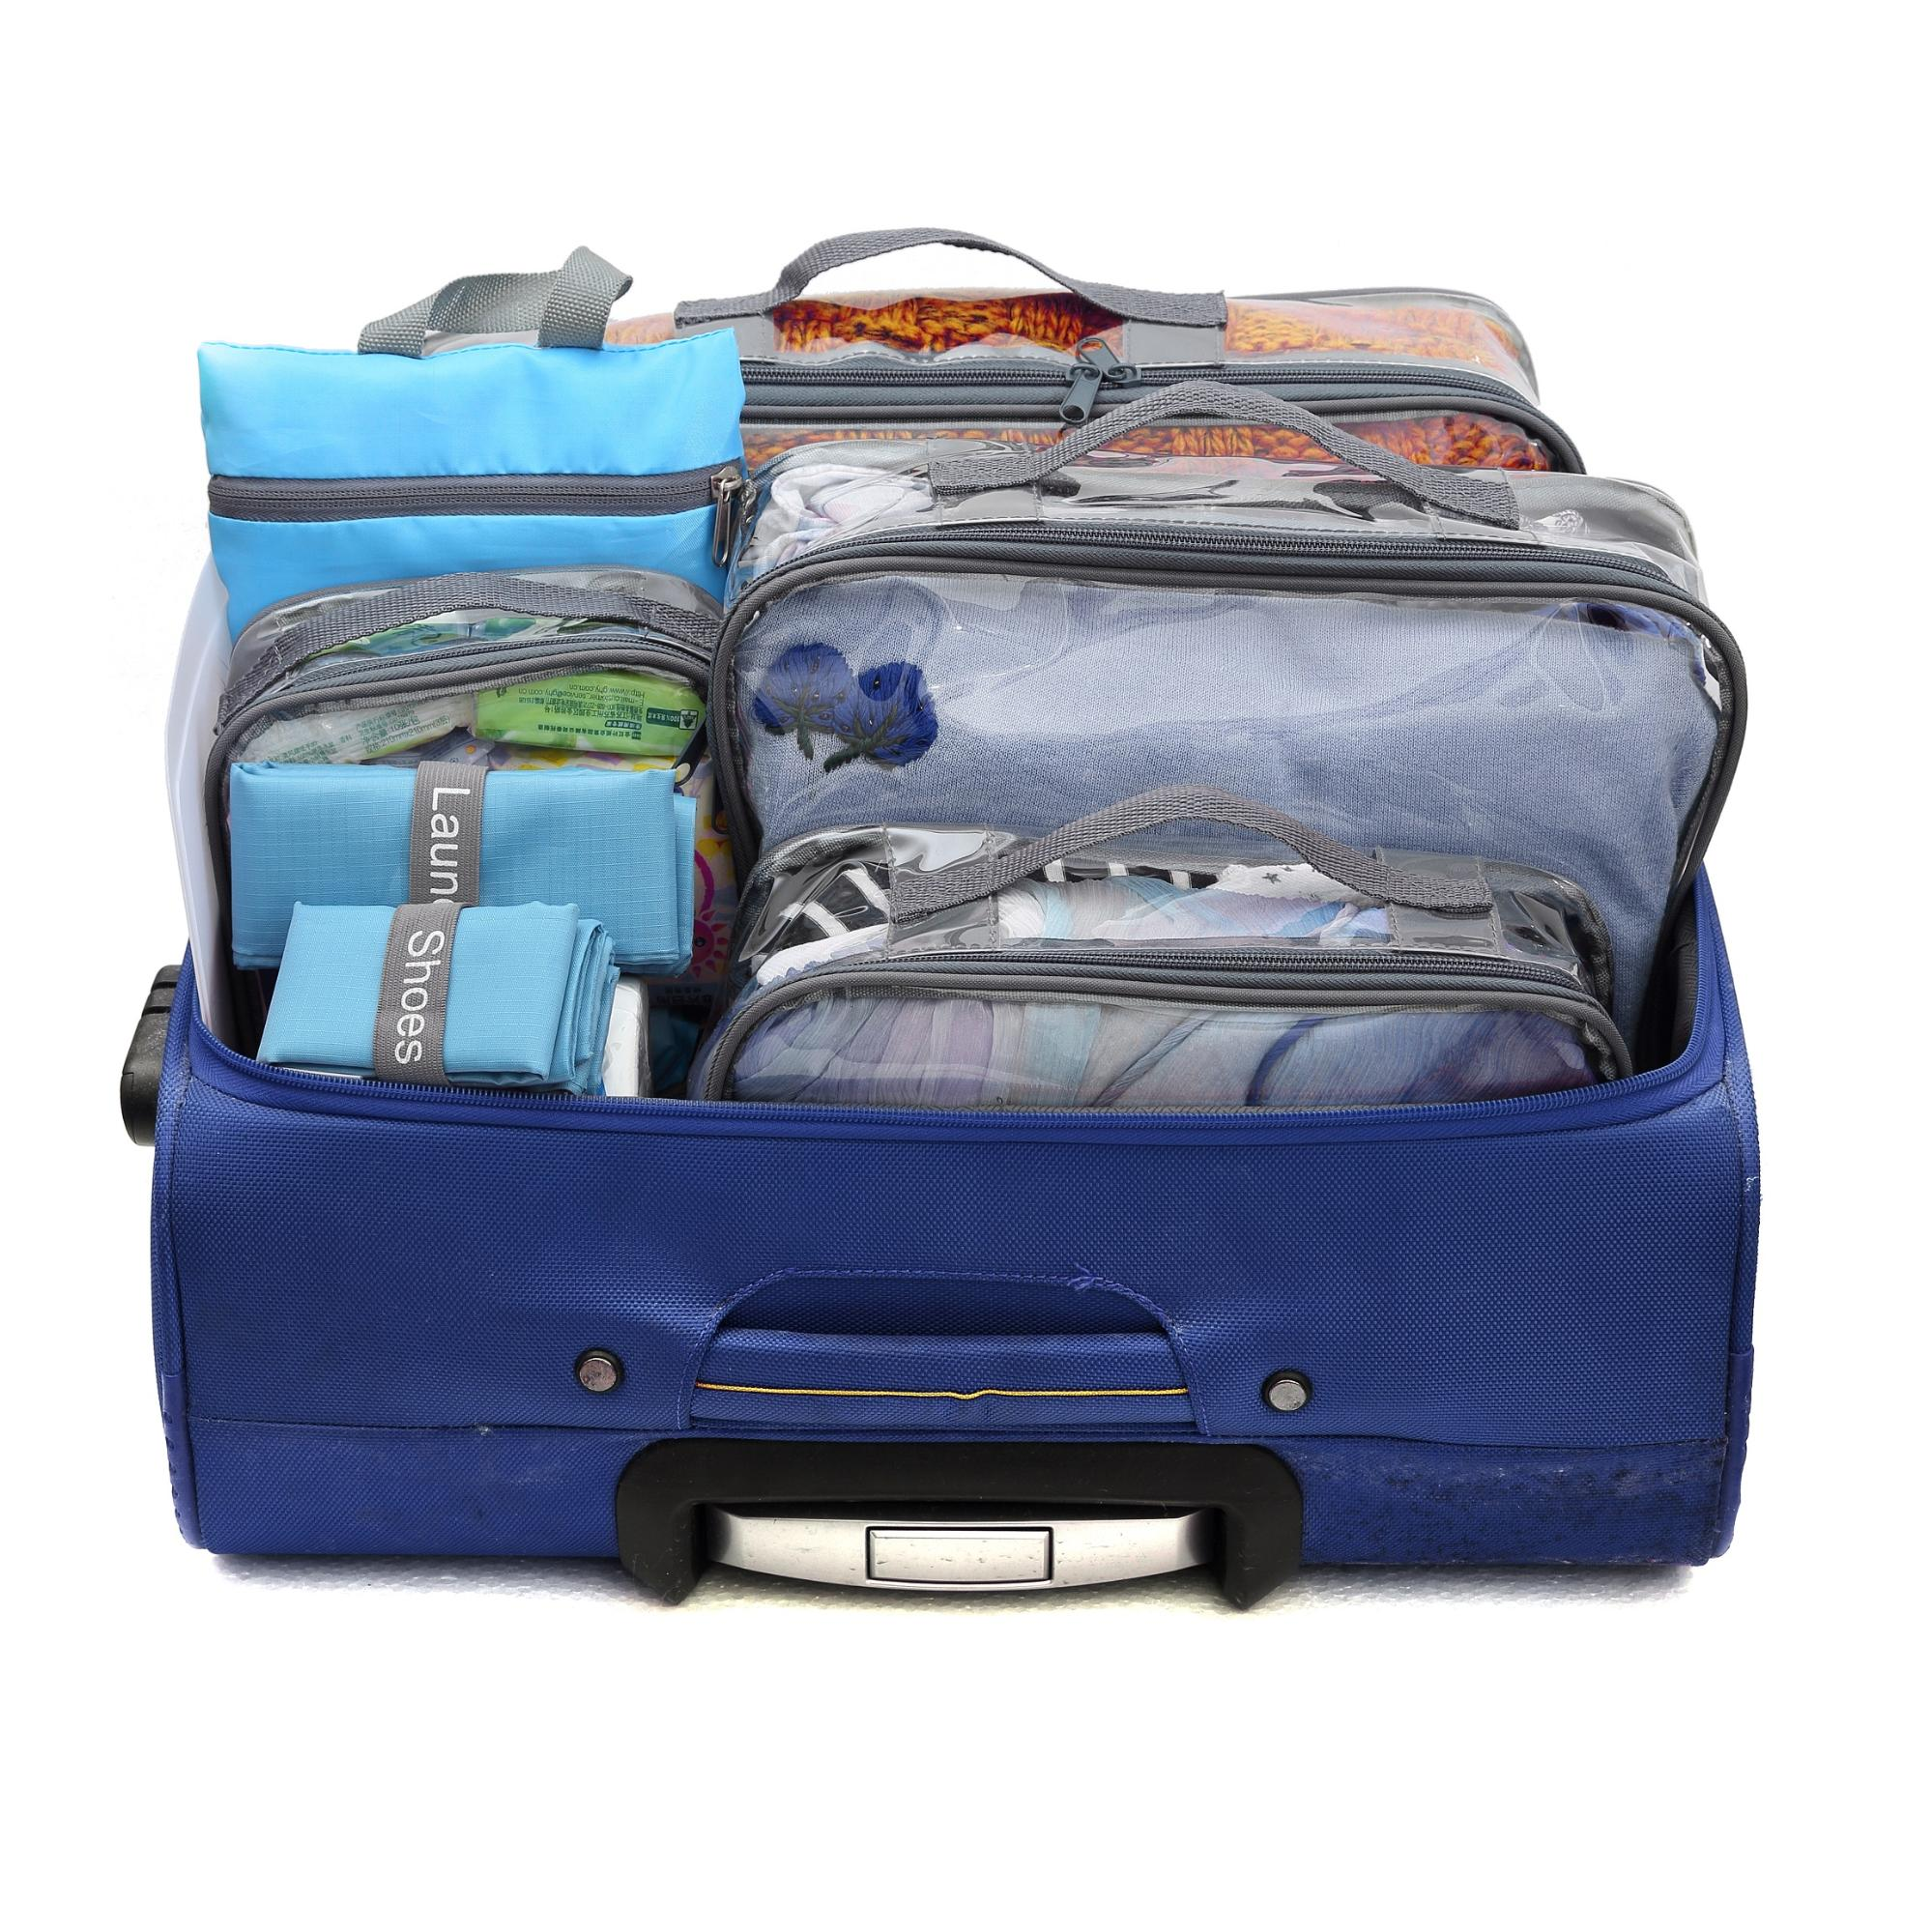 Grey EzPacking cubes inside blue suitcase you can use for completing your international travel checklist